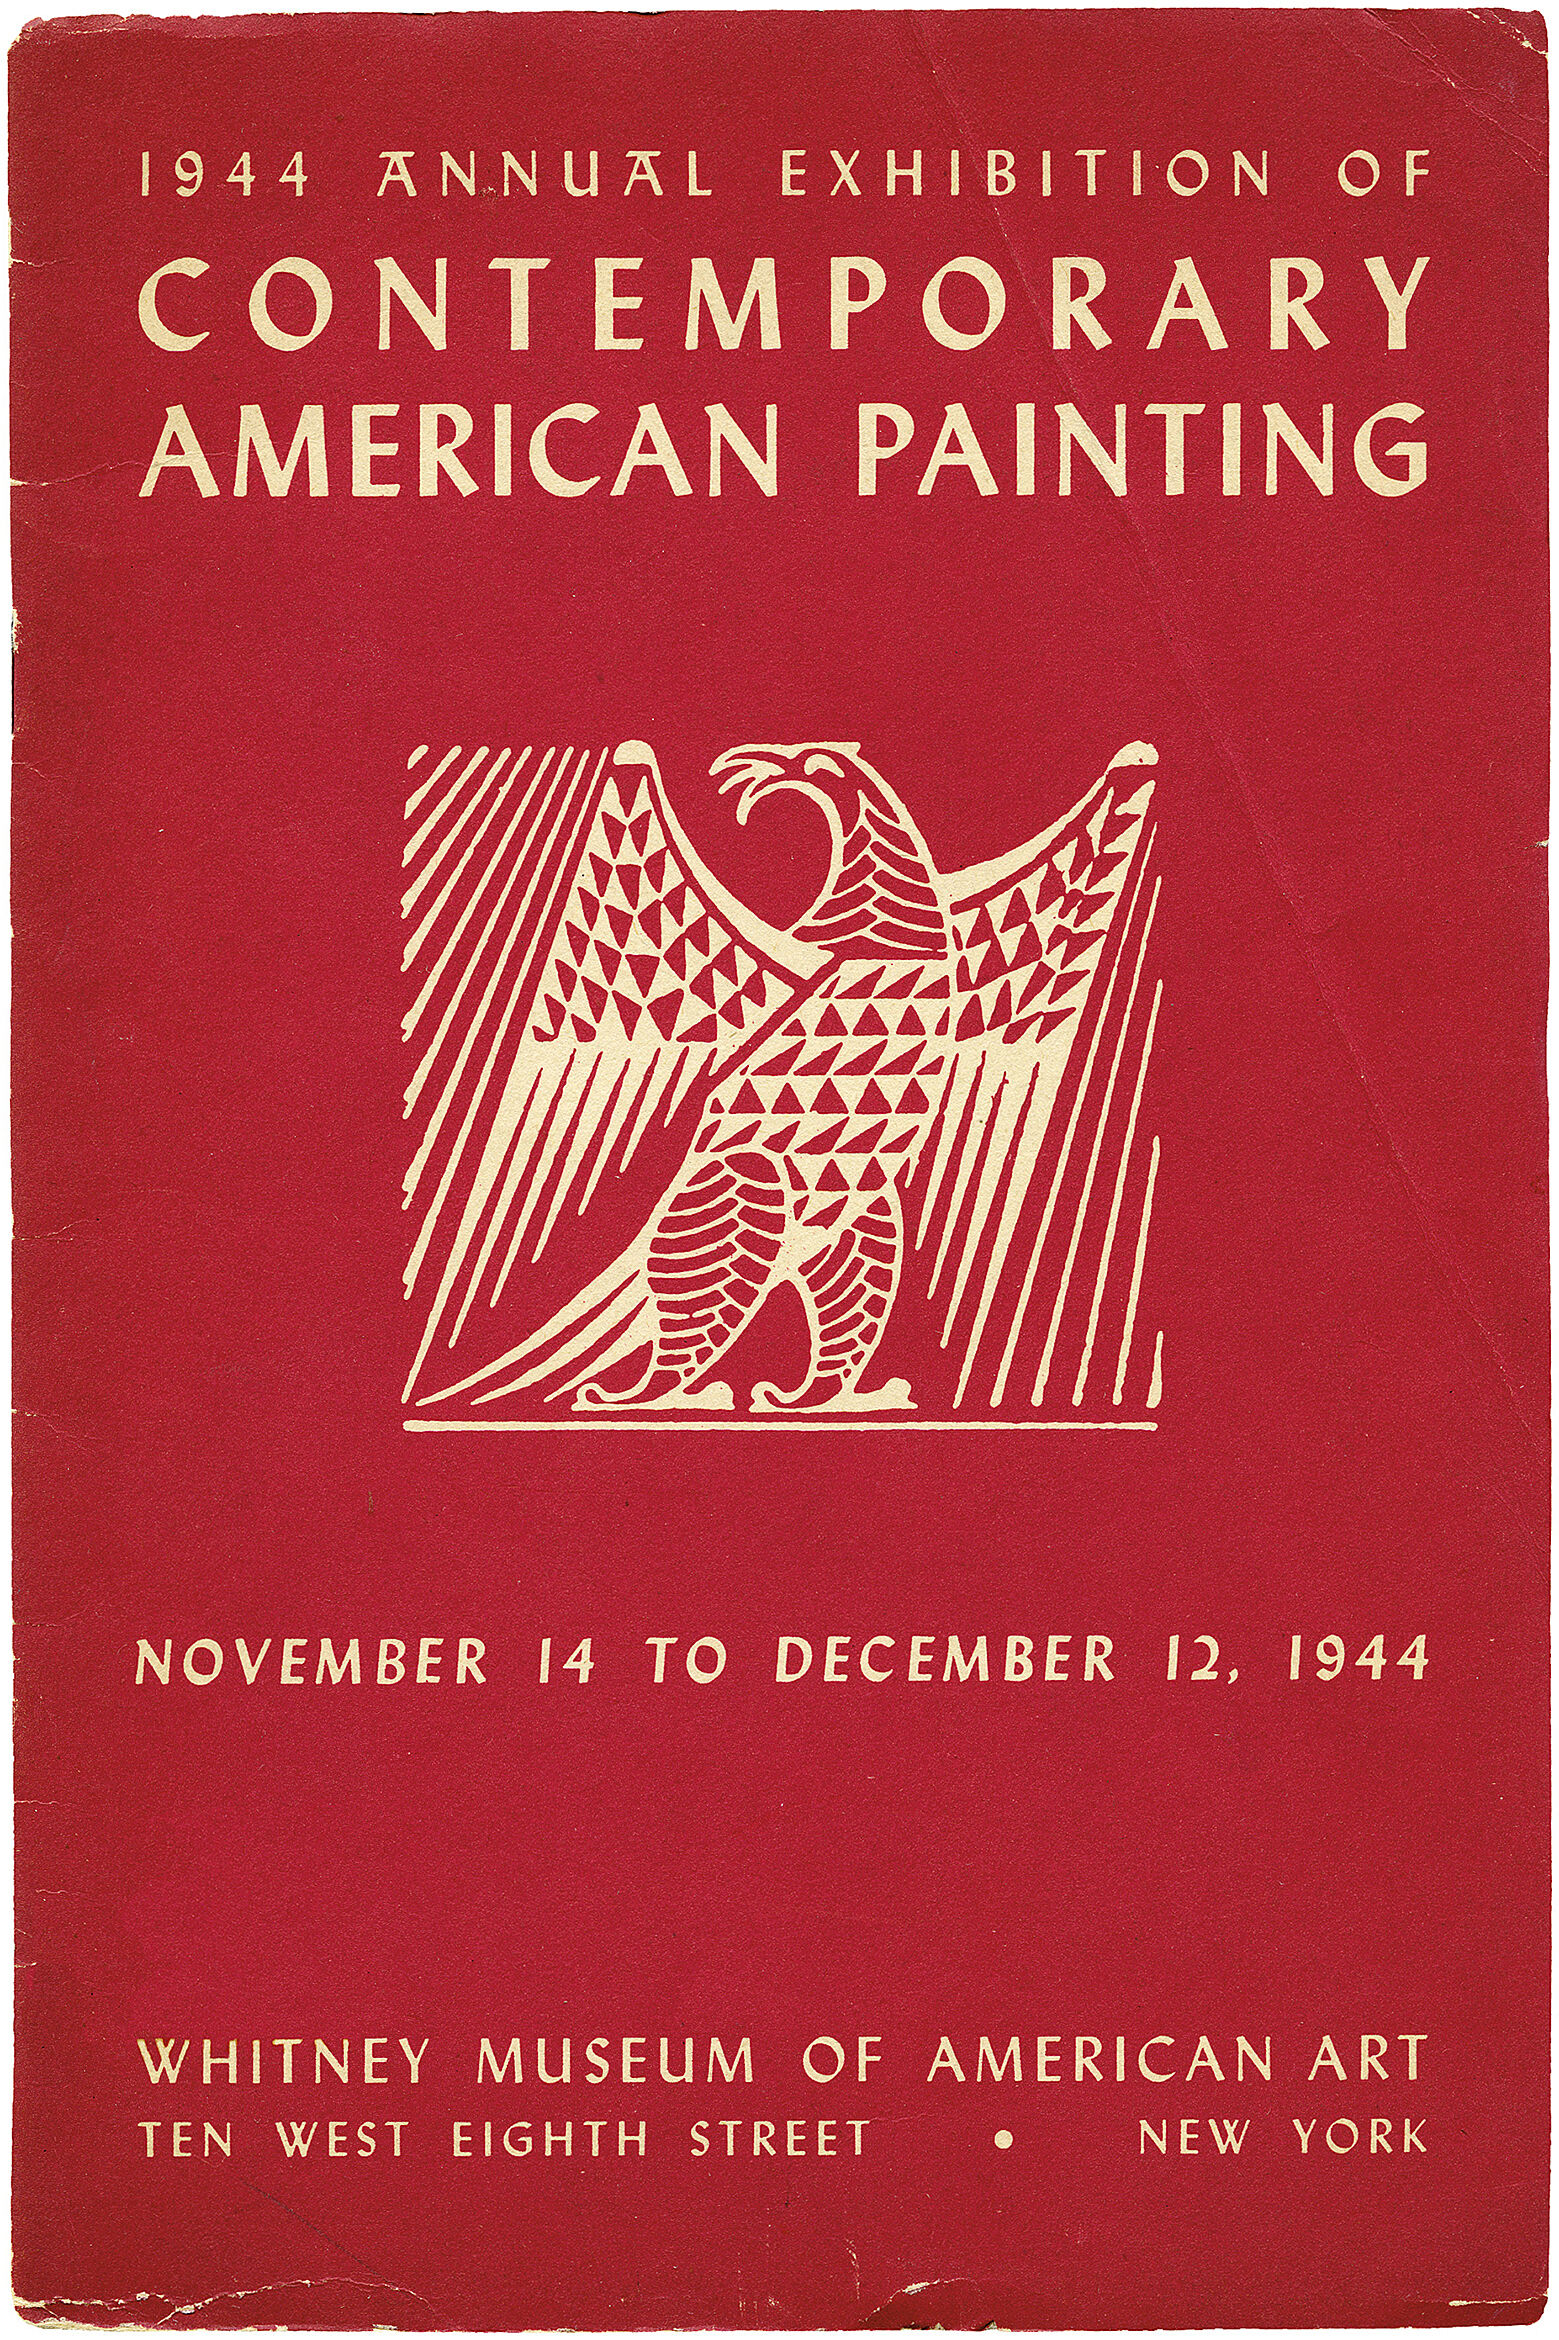 Cover for 1944 Annual Exhibition of Contemporary American Painting catalogue